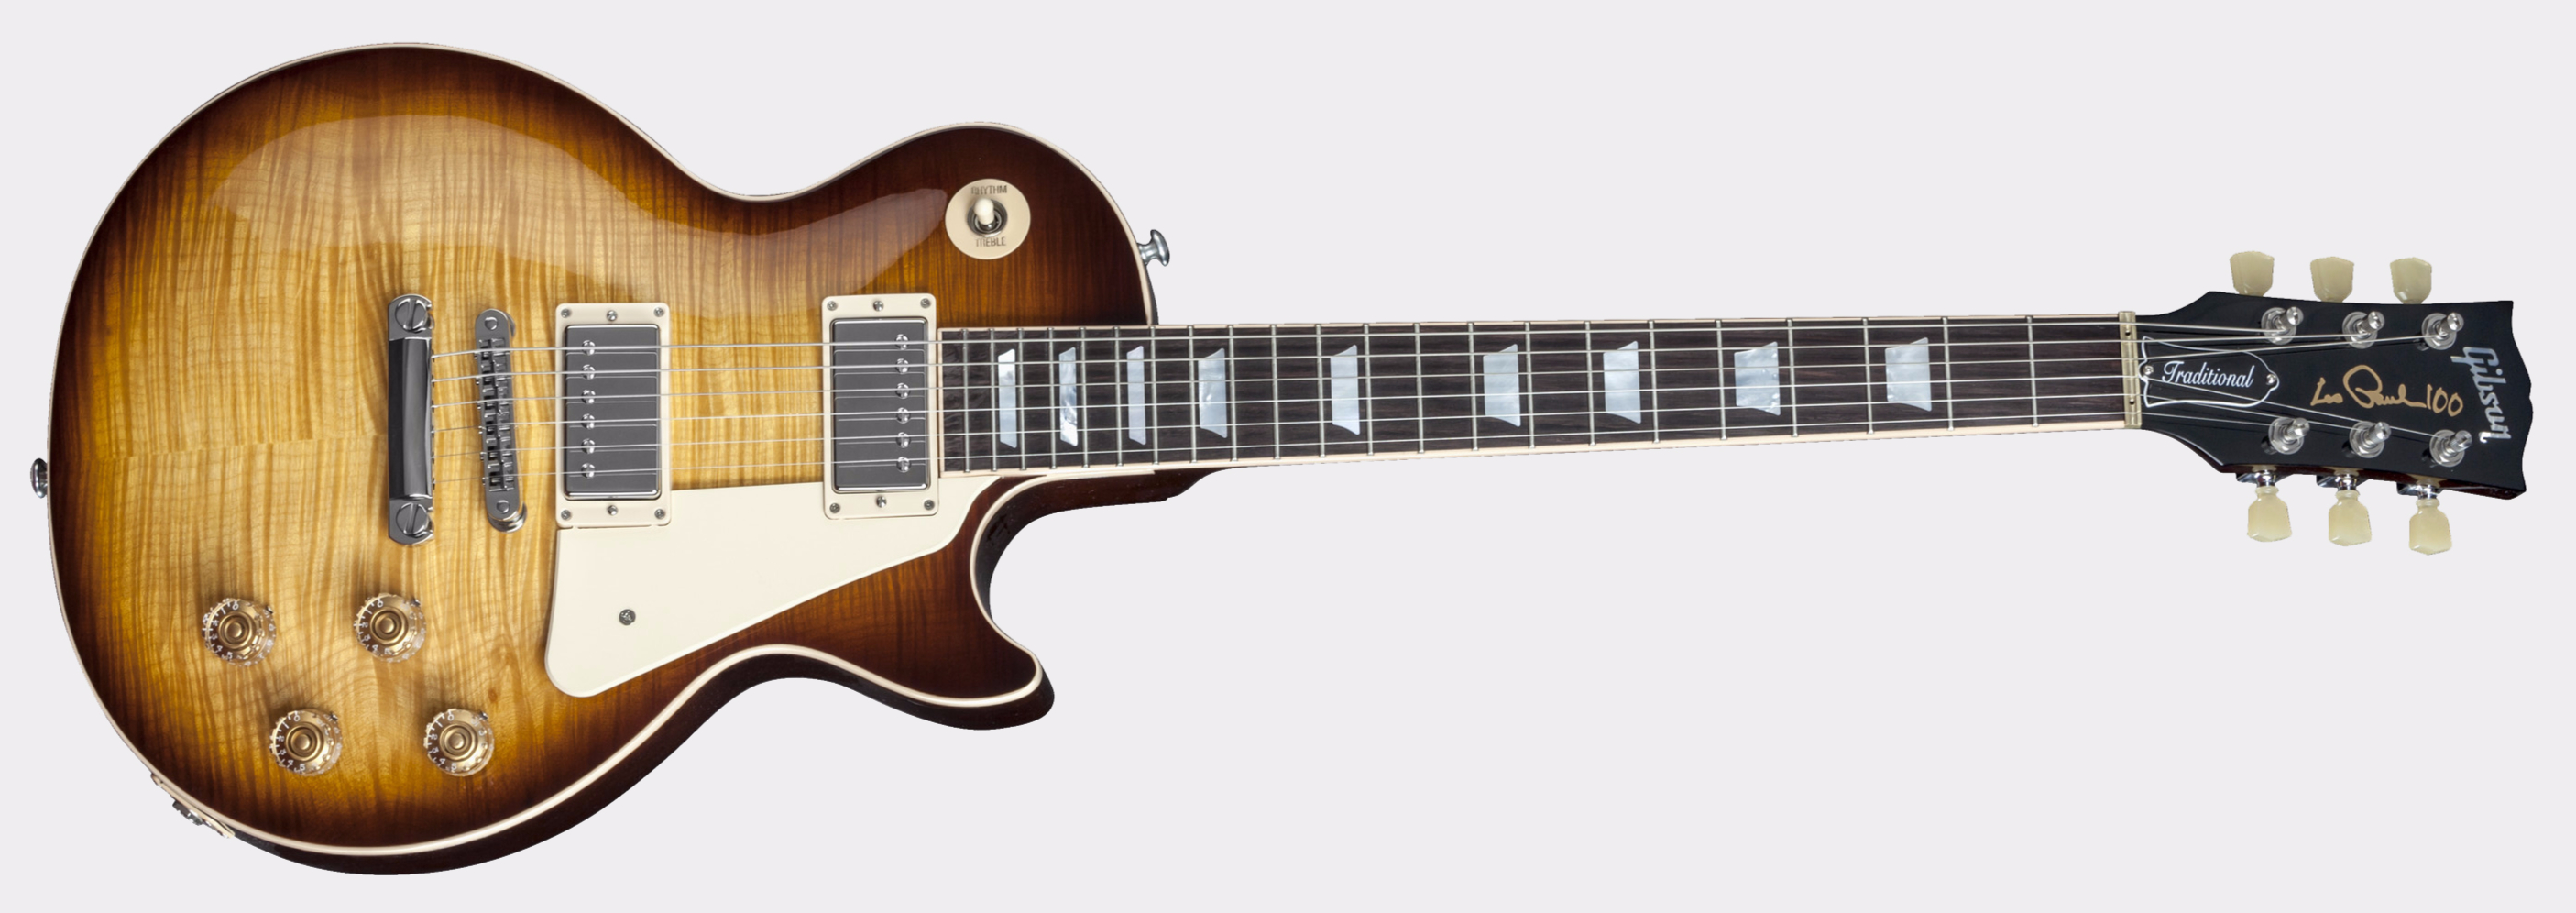 GIBSON Les Paul Traditional 2015 Tobacco Sunburst